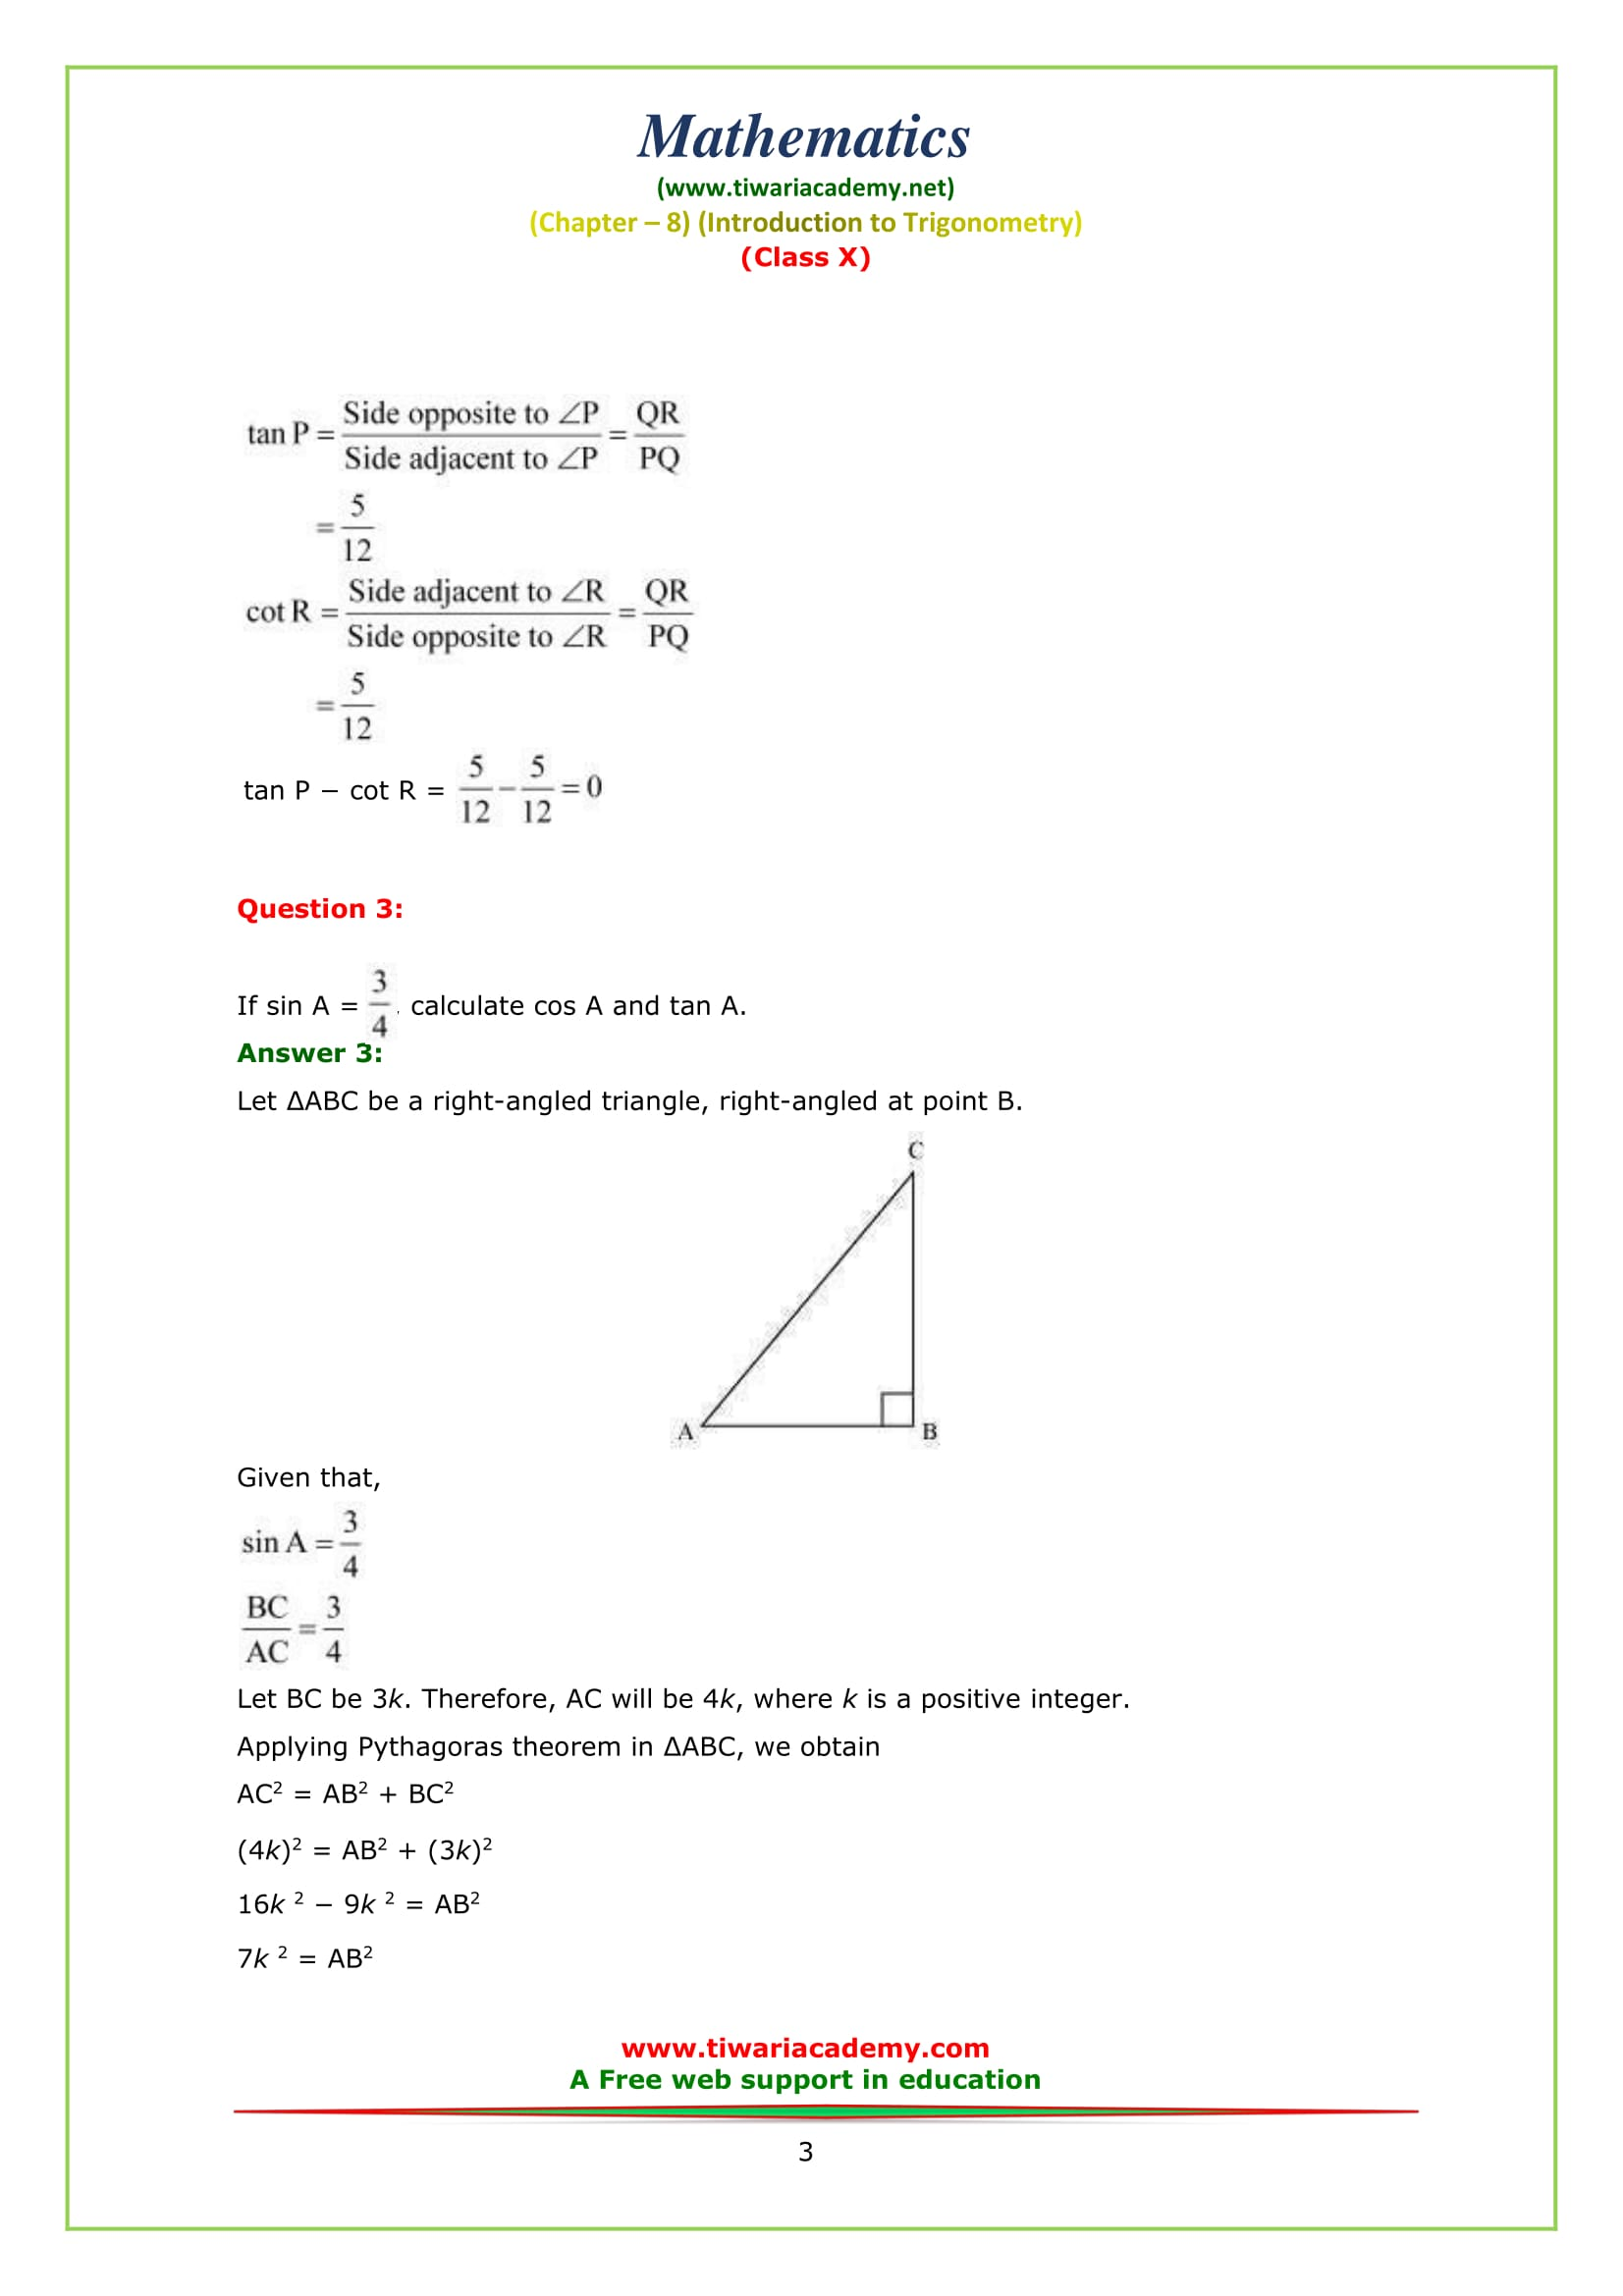 NCERT Solutions for Class 10 Maths Chapter 8 Exercise 8.1 Question 3